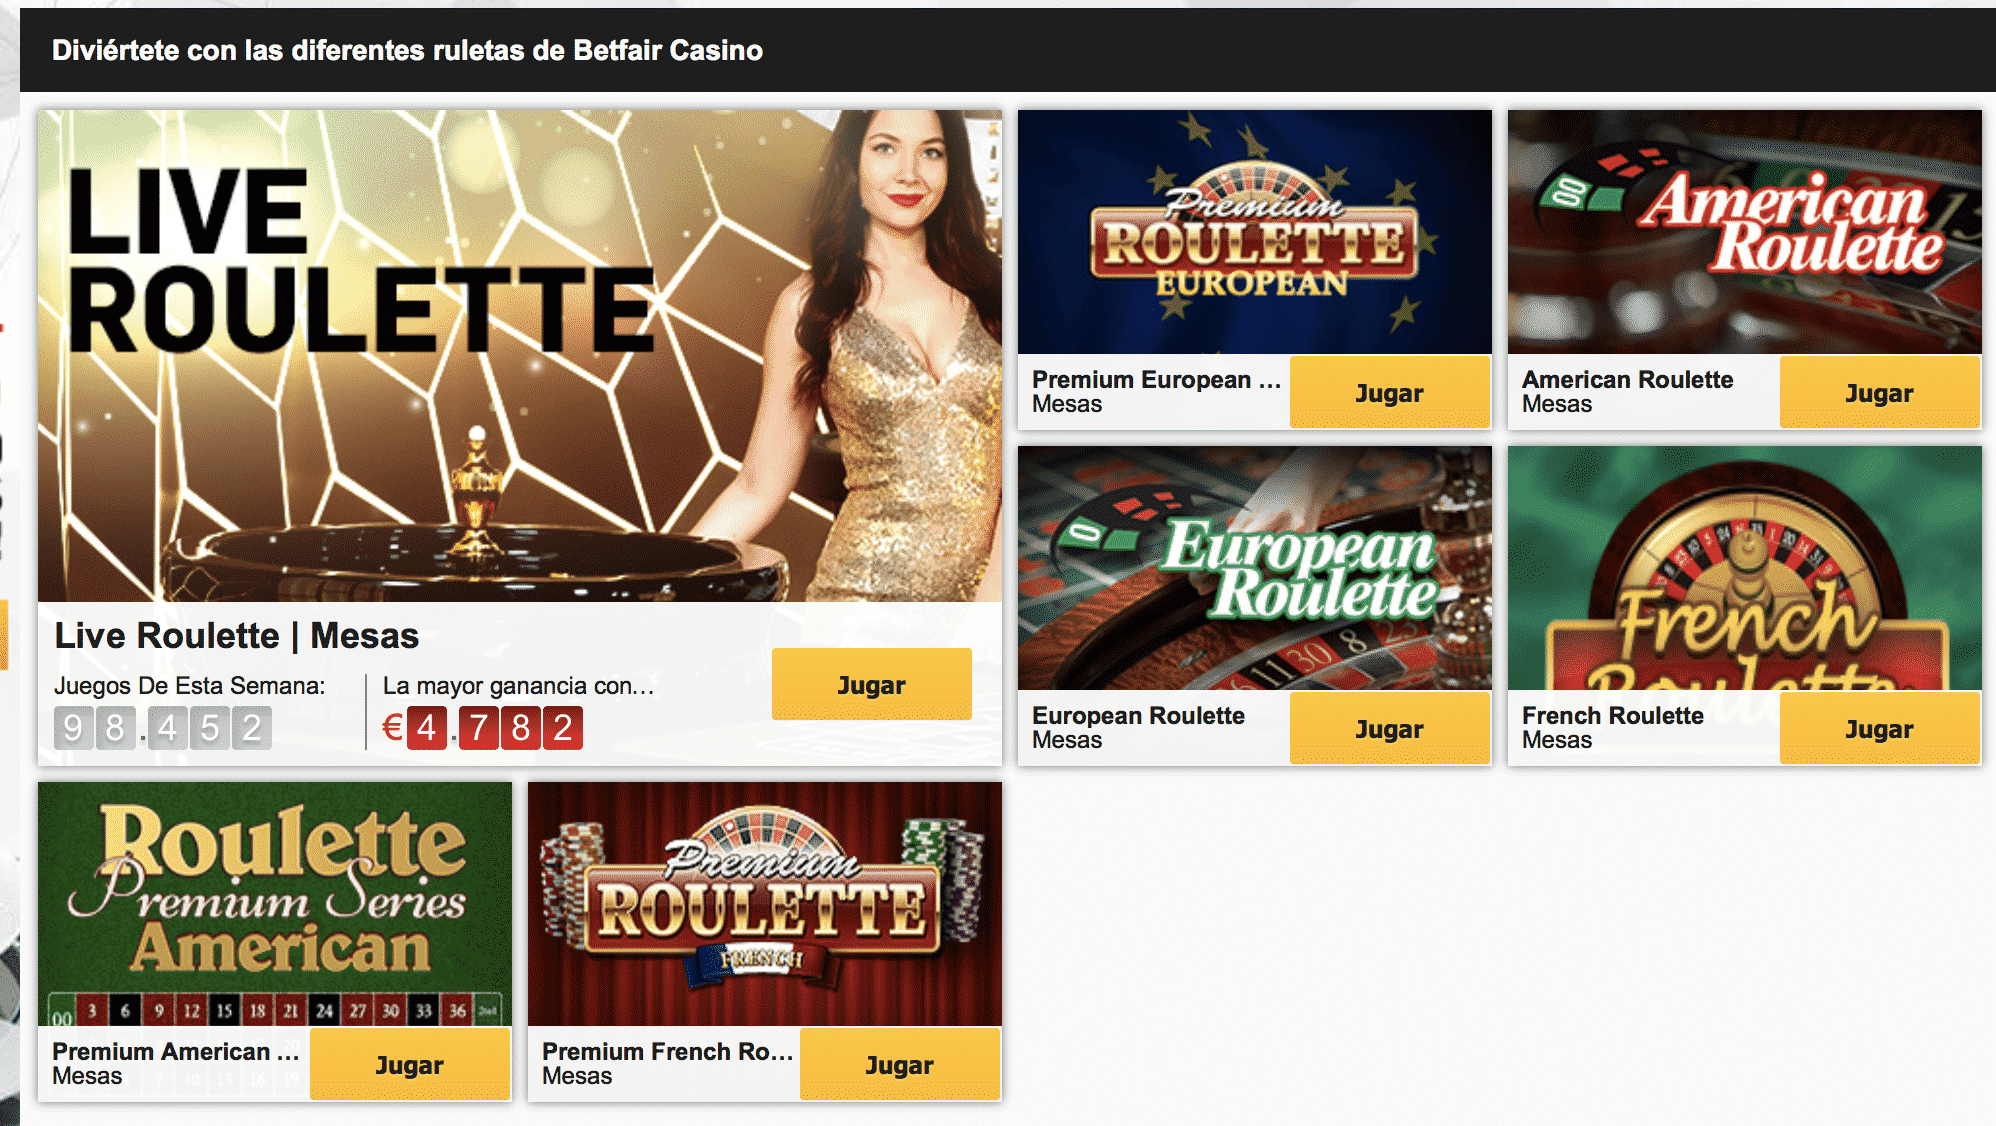 Casino Marca apuestas betfair poker-138275